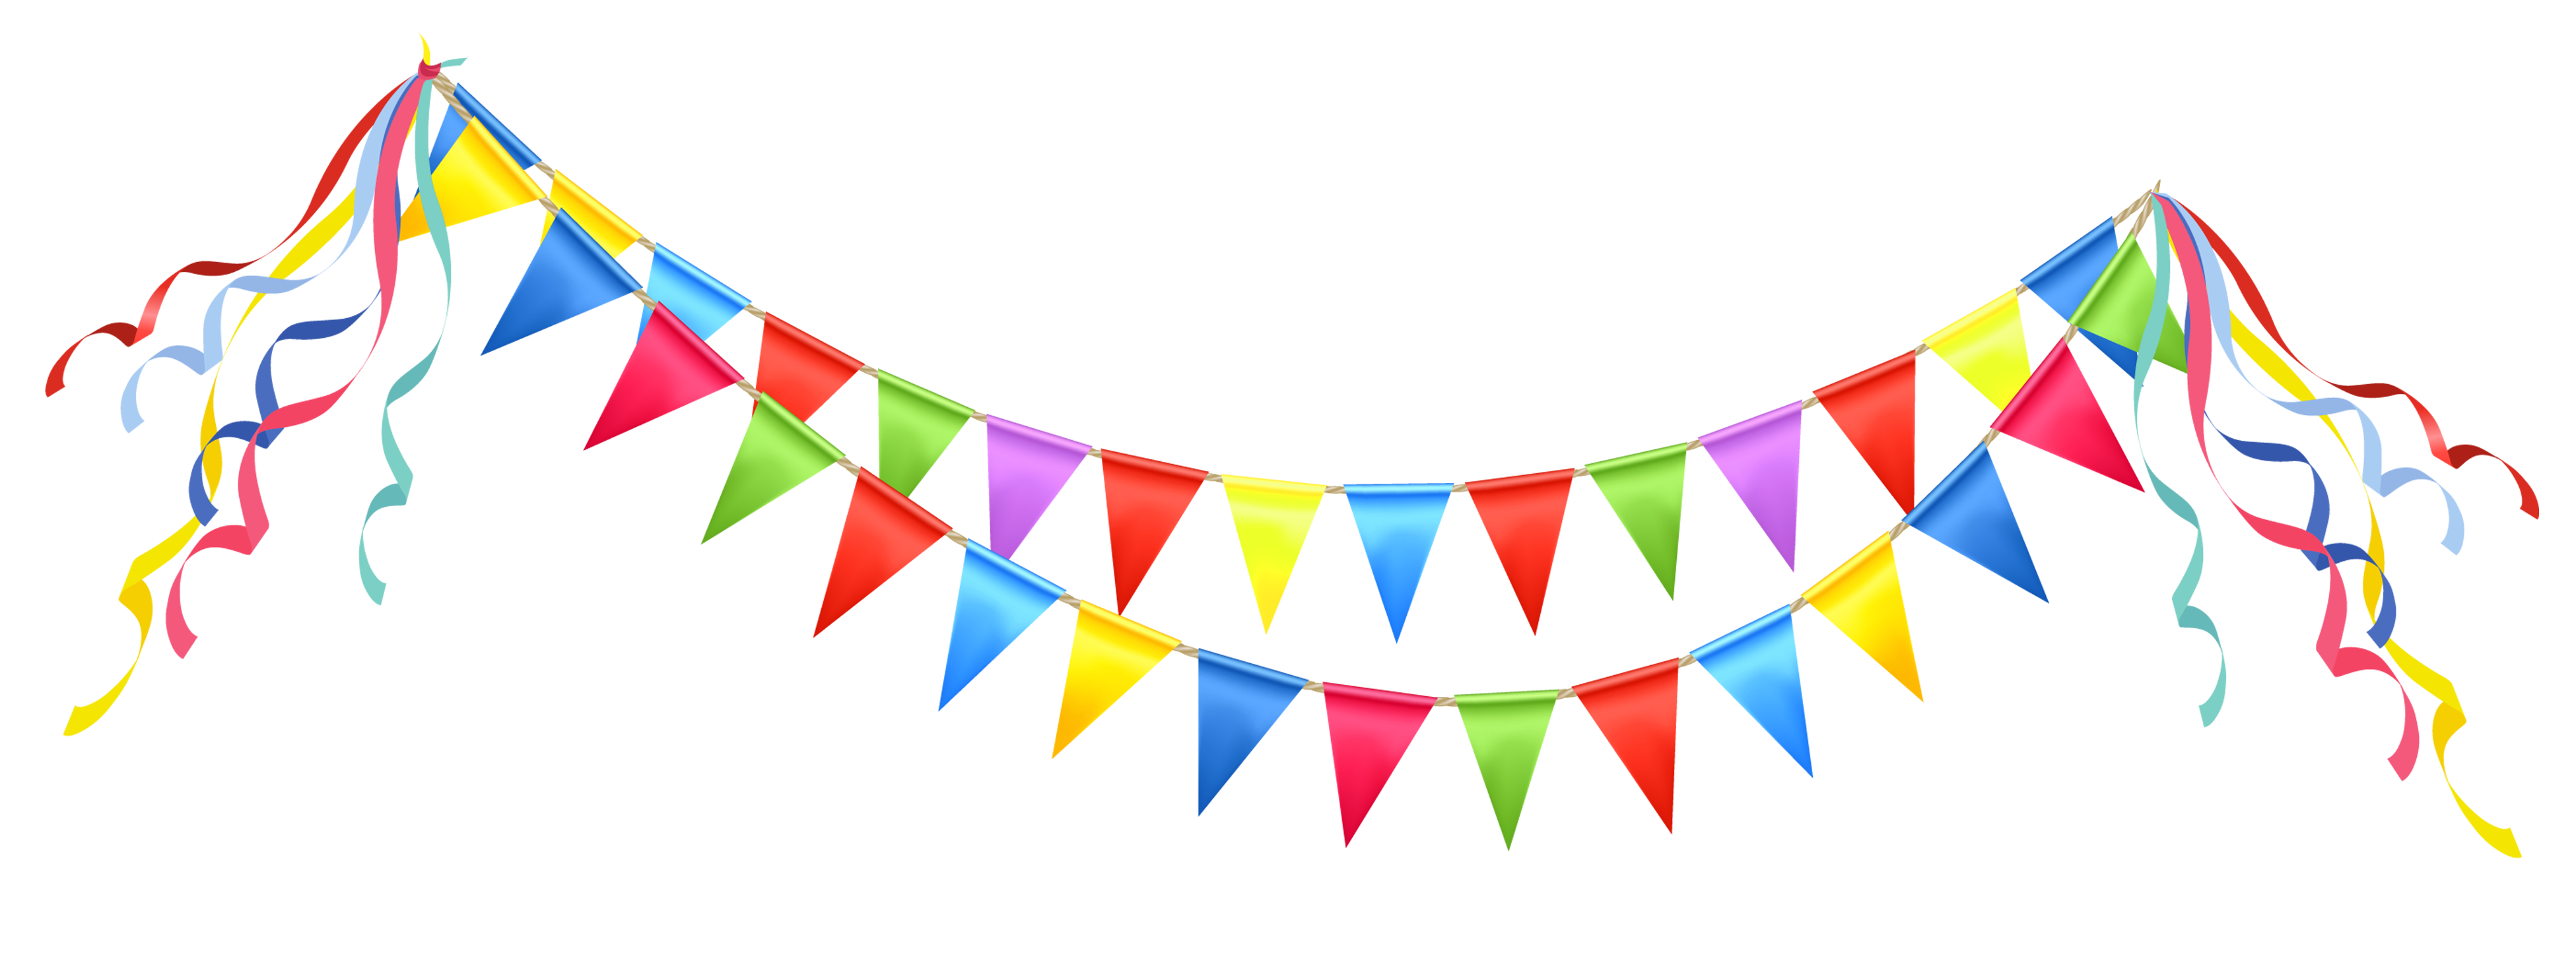 Parties free download clip. Garland clipart streamer